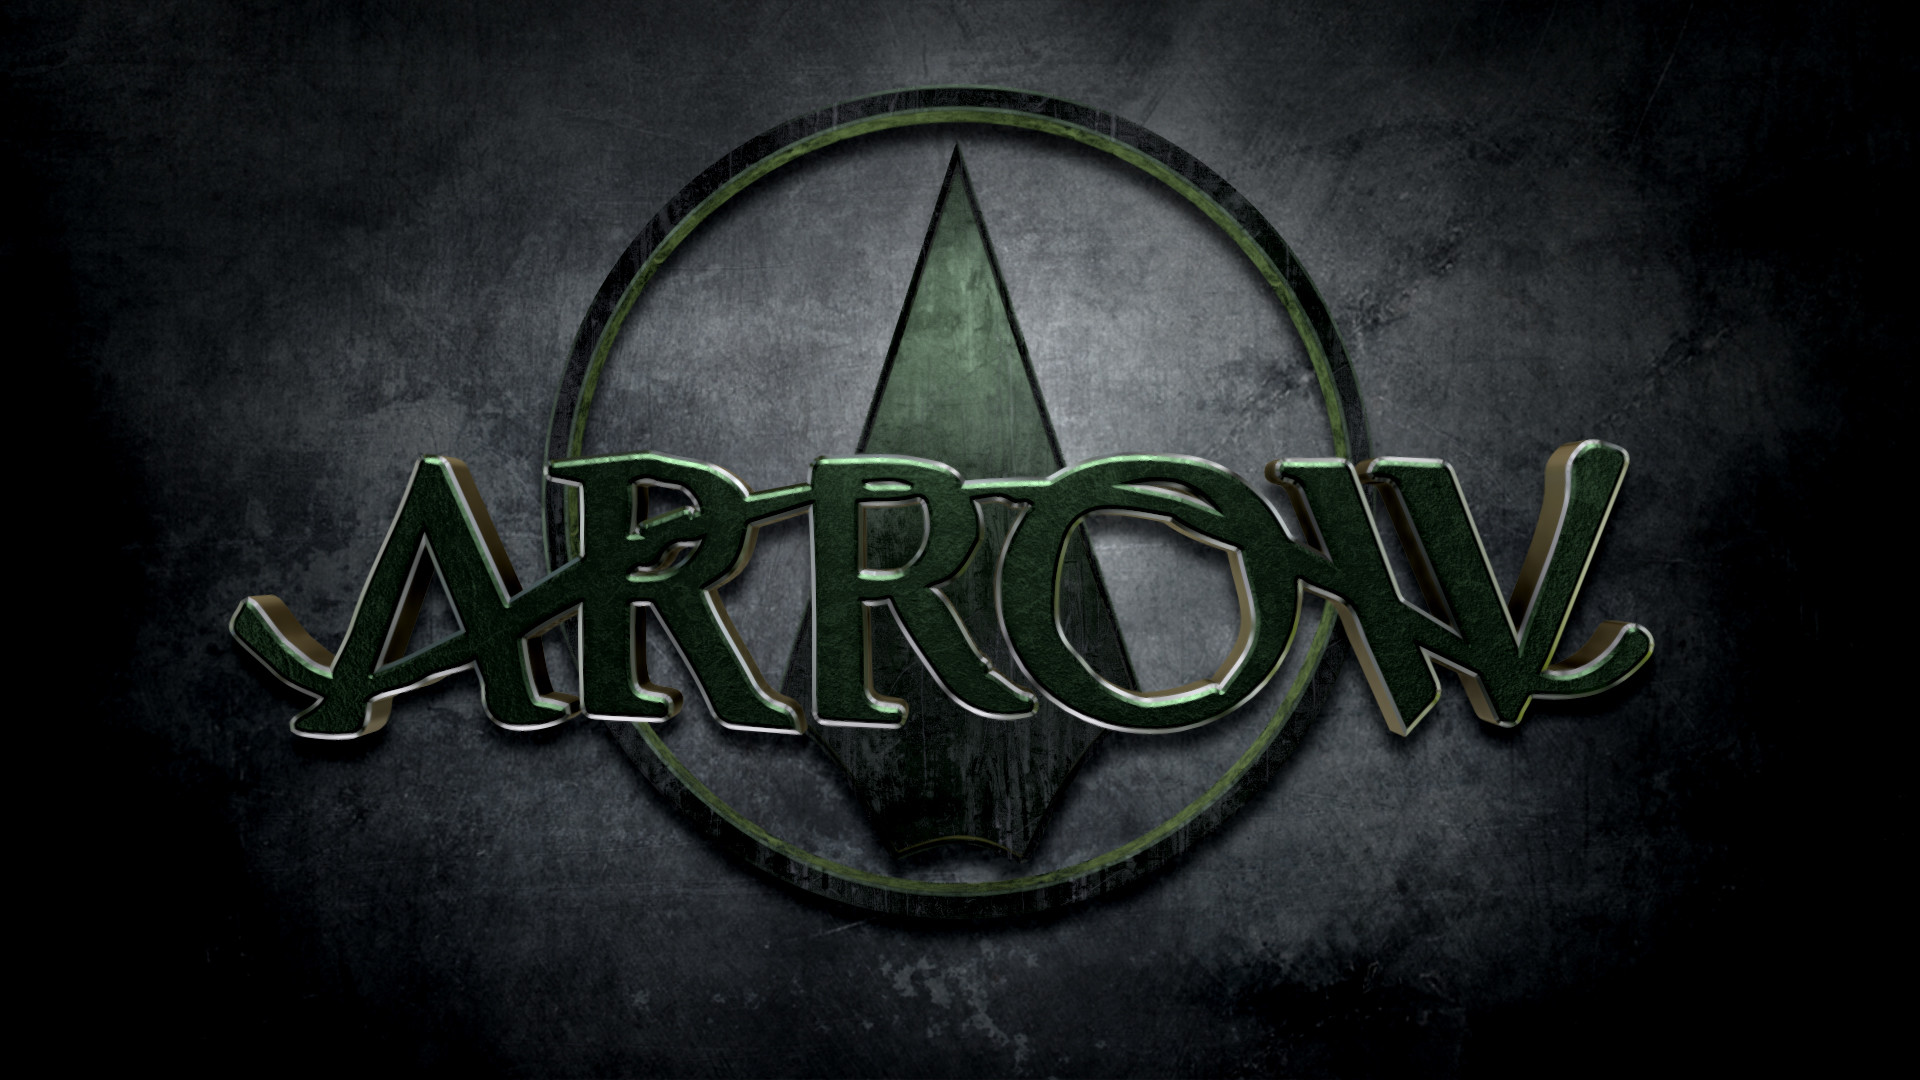 Green arrow wallpaper hd 81 images 3840x2160 tags arrow lazarus pit hd voltagebd Gallery